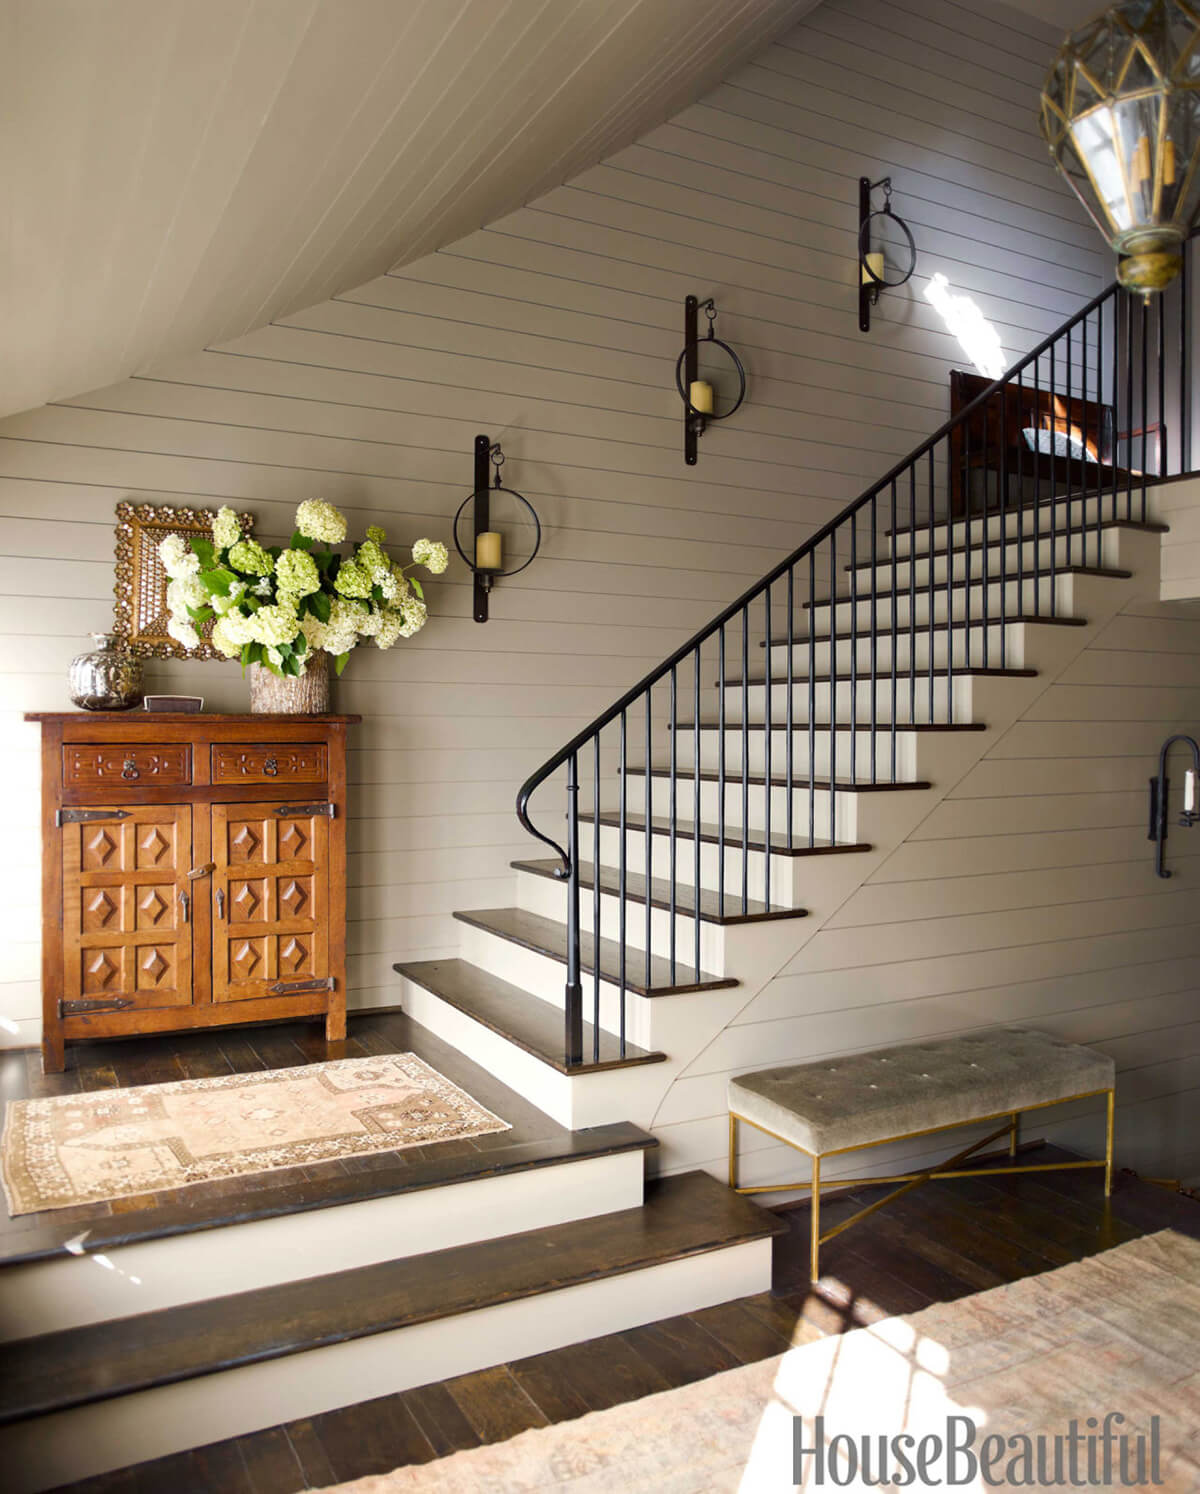 567 Best Staircase Ideas Images On Pinterest: 28 Best Stairway Decorating Ideas And Designs For 2019